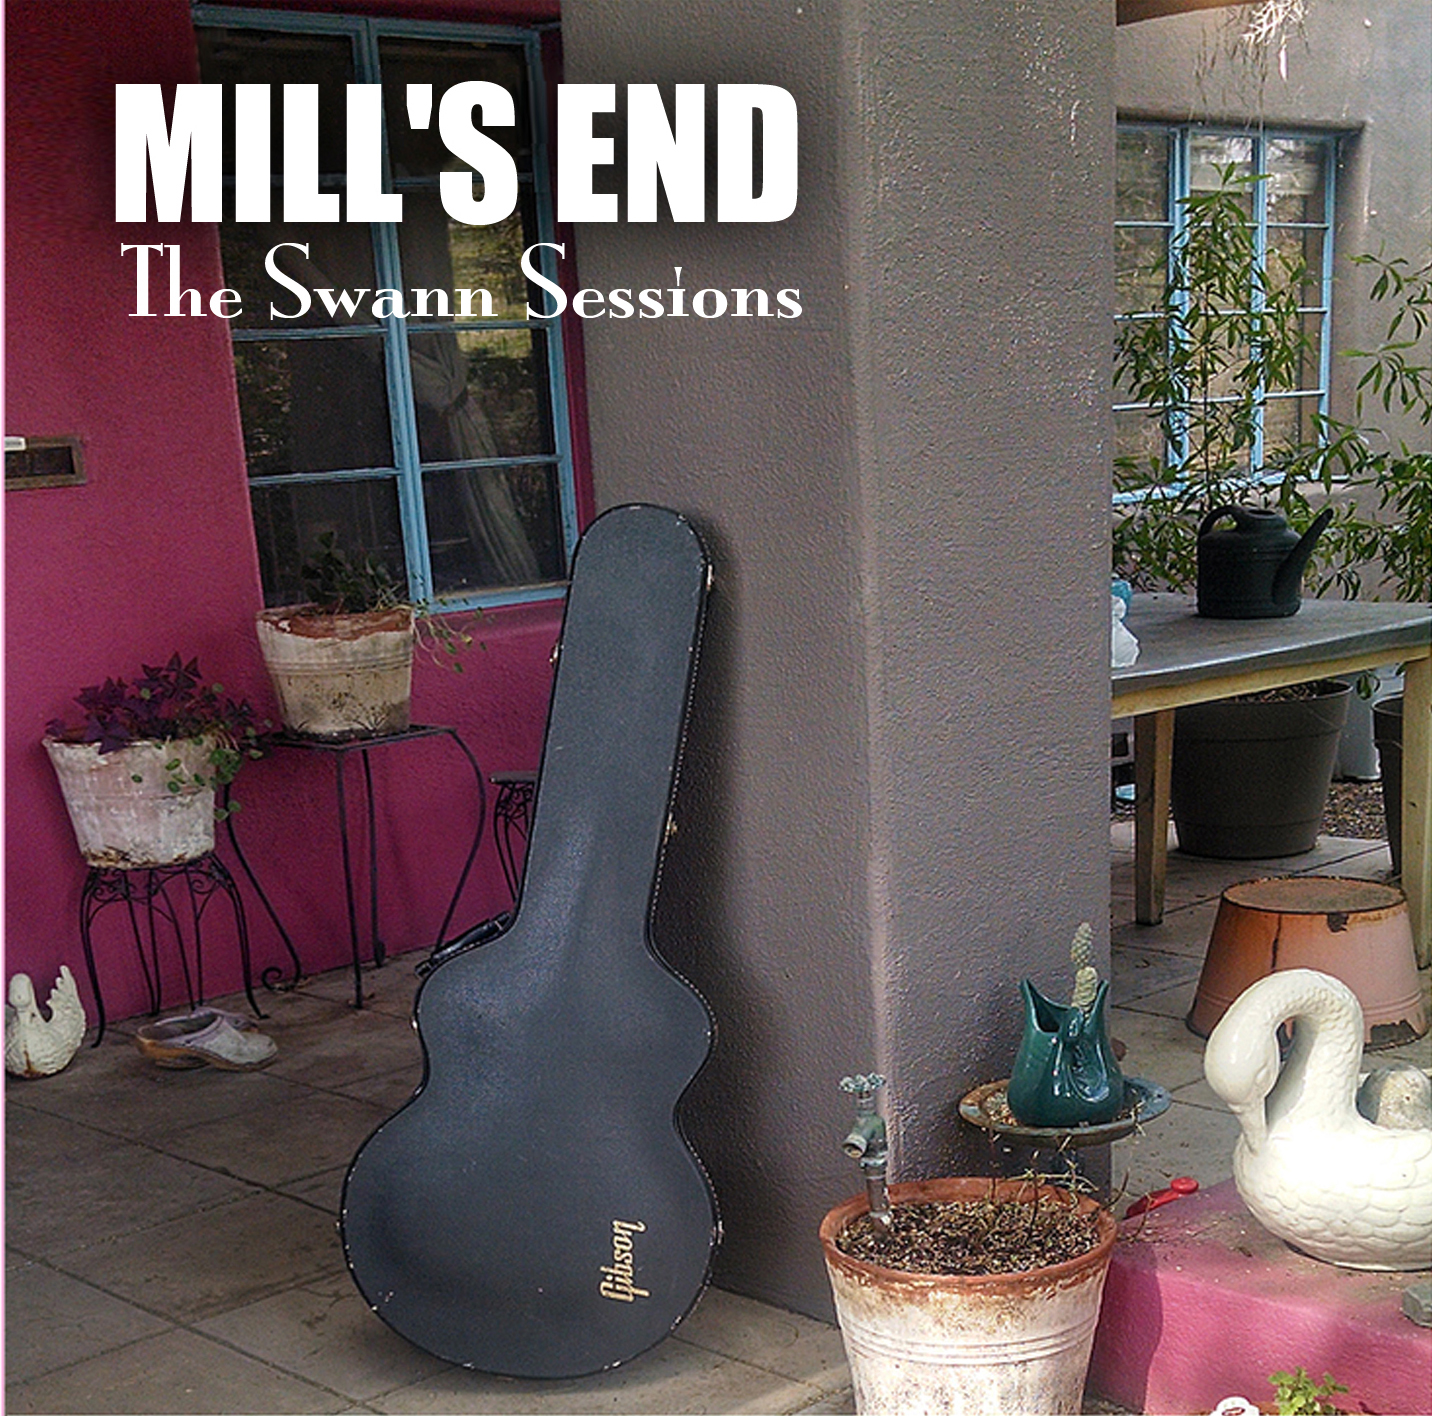 Mill's End - The Swann Sessions